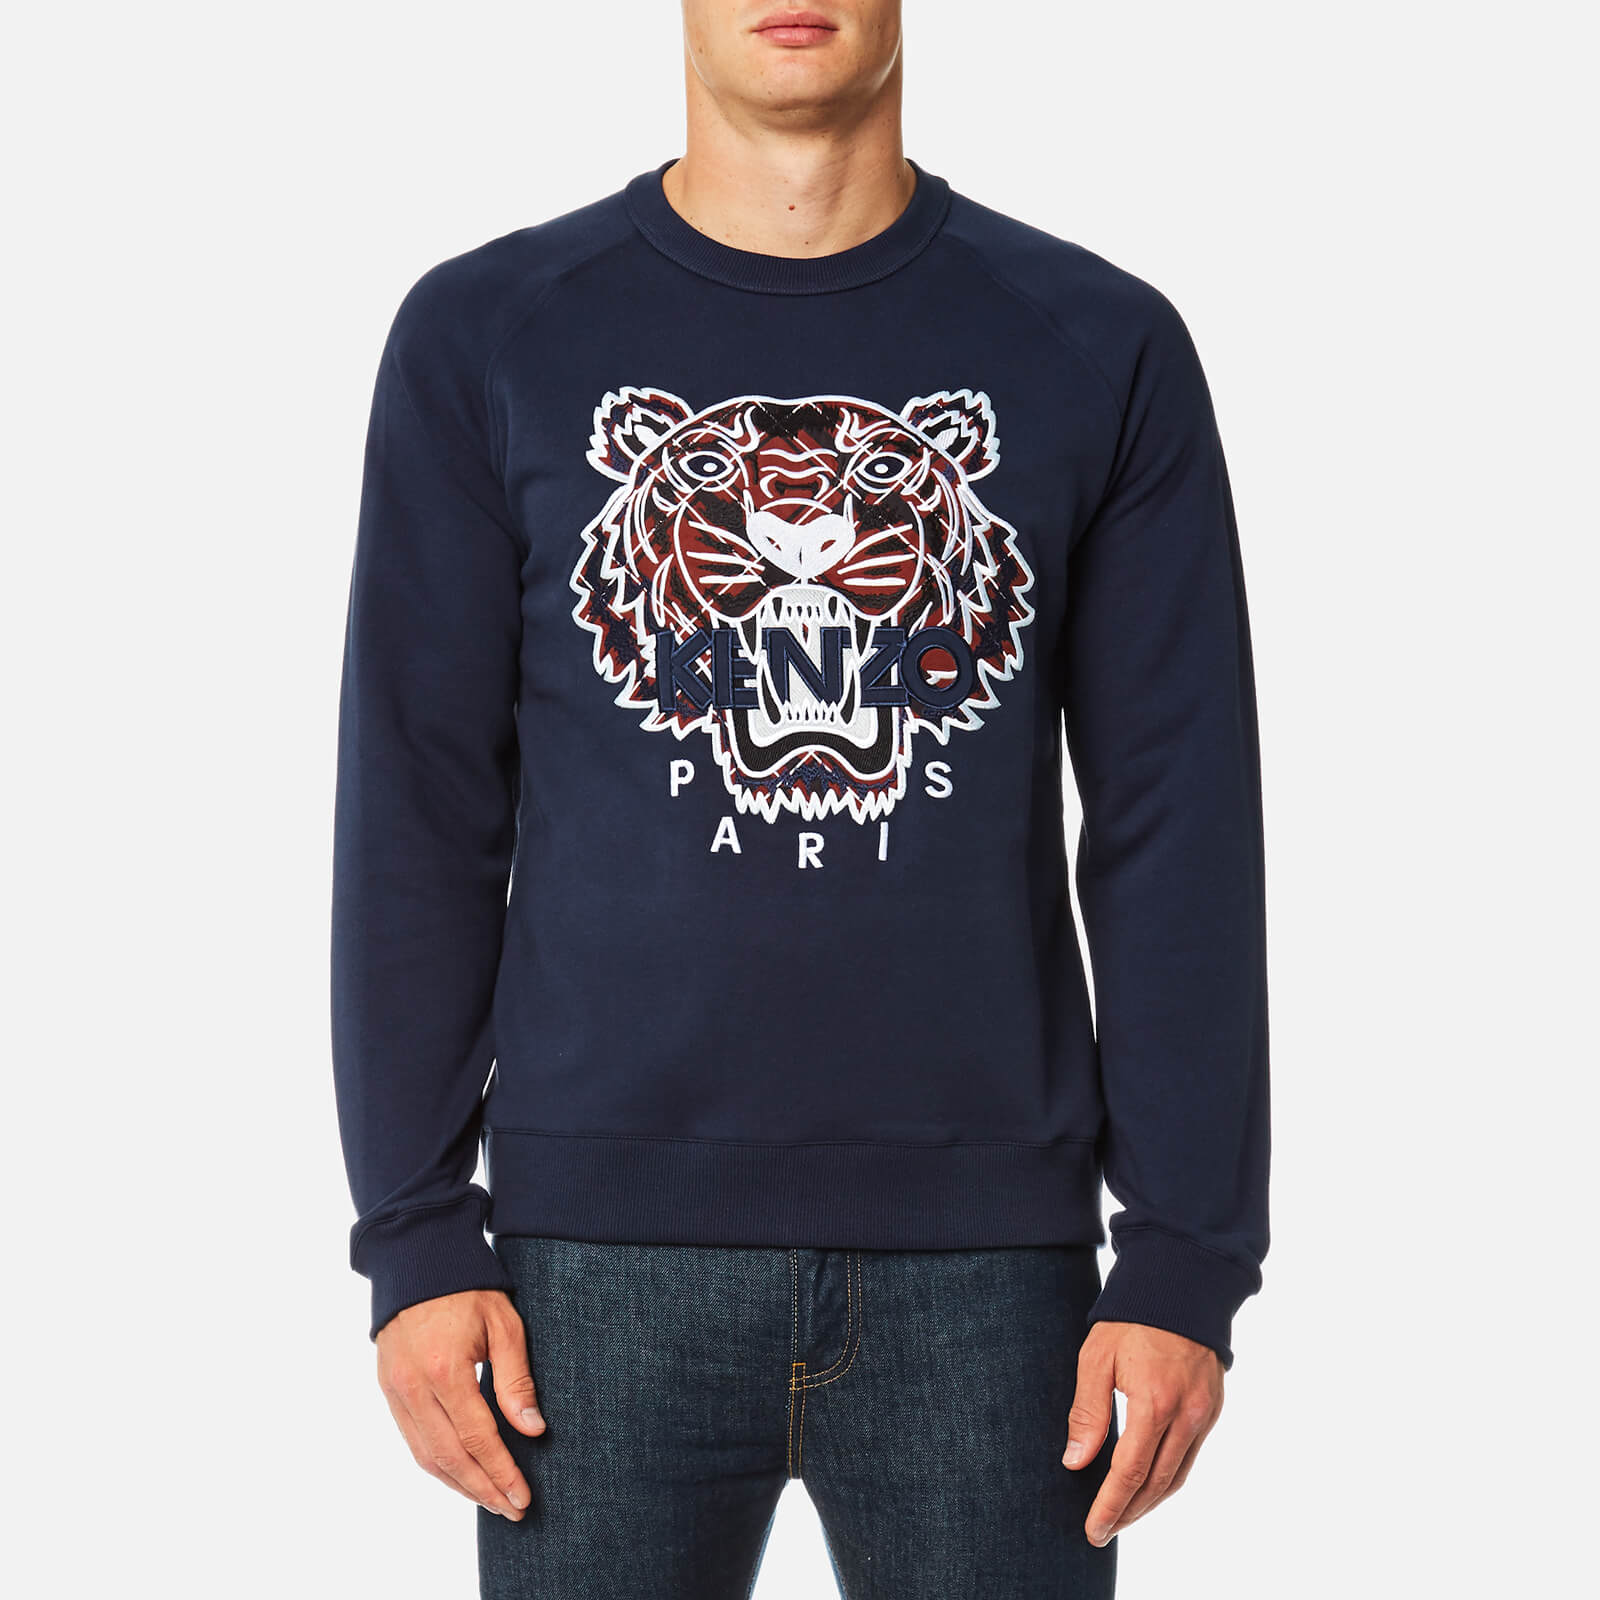 0f224704a KENZO Men's Check Tiger Logo Sweatshirt - Ink - Free UK Delivery over £50